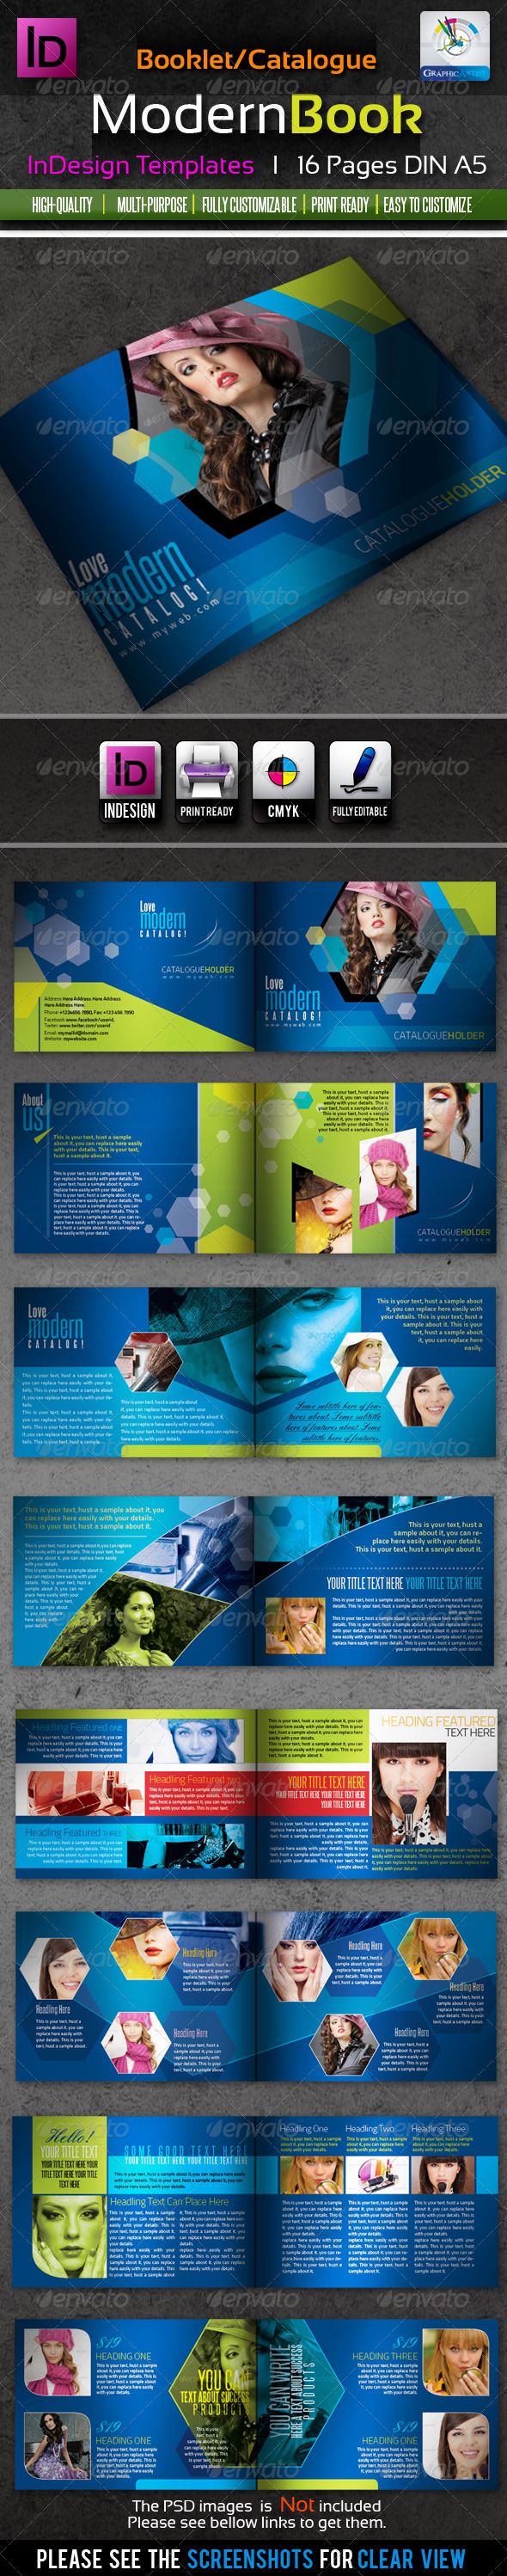 GraphicRiver Corporate InDesign Modern Booklet Catalog 16pages 1866935